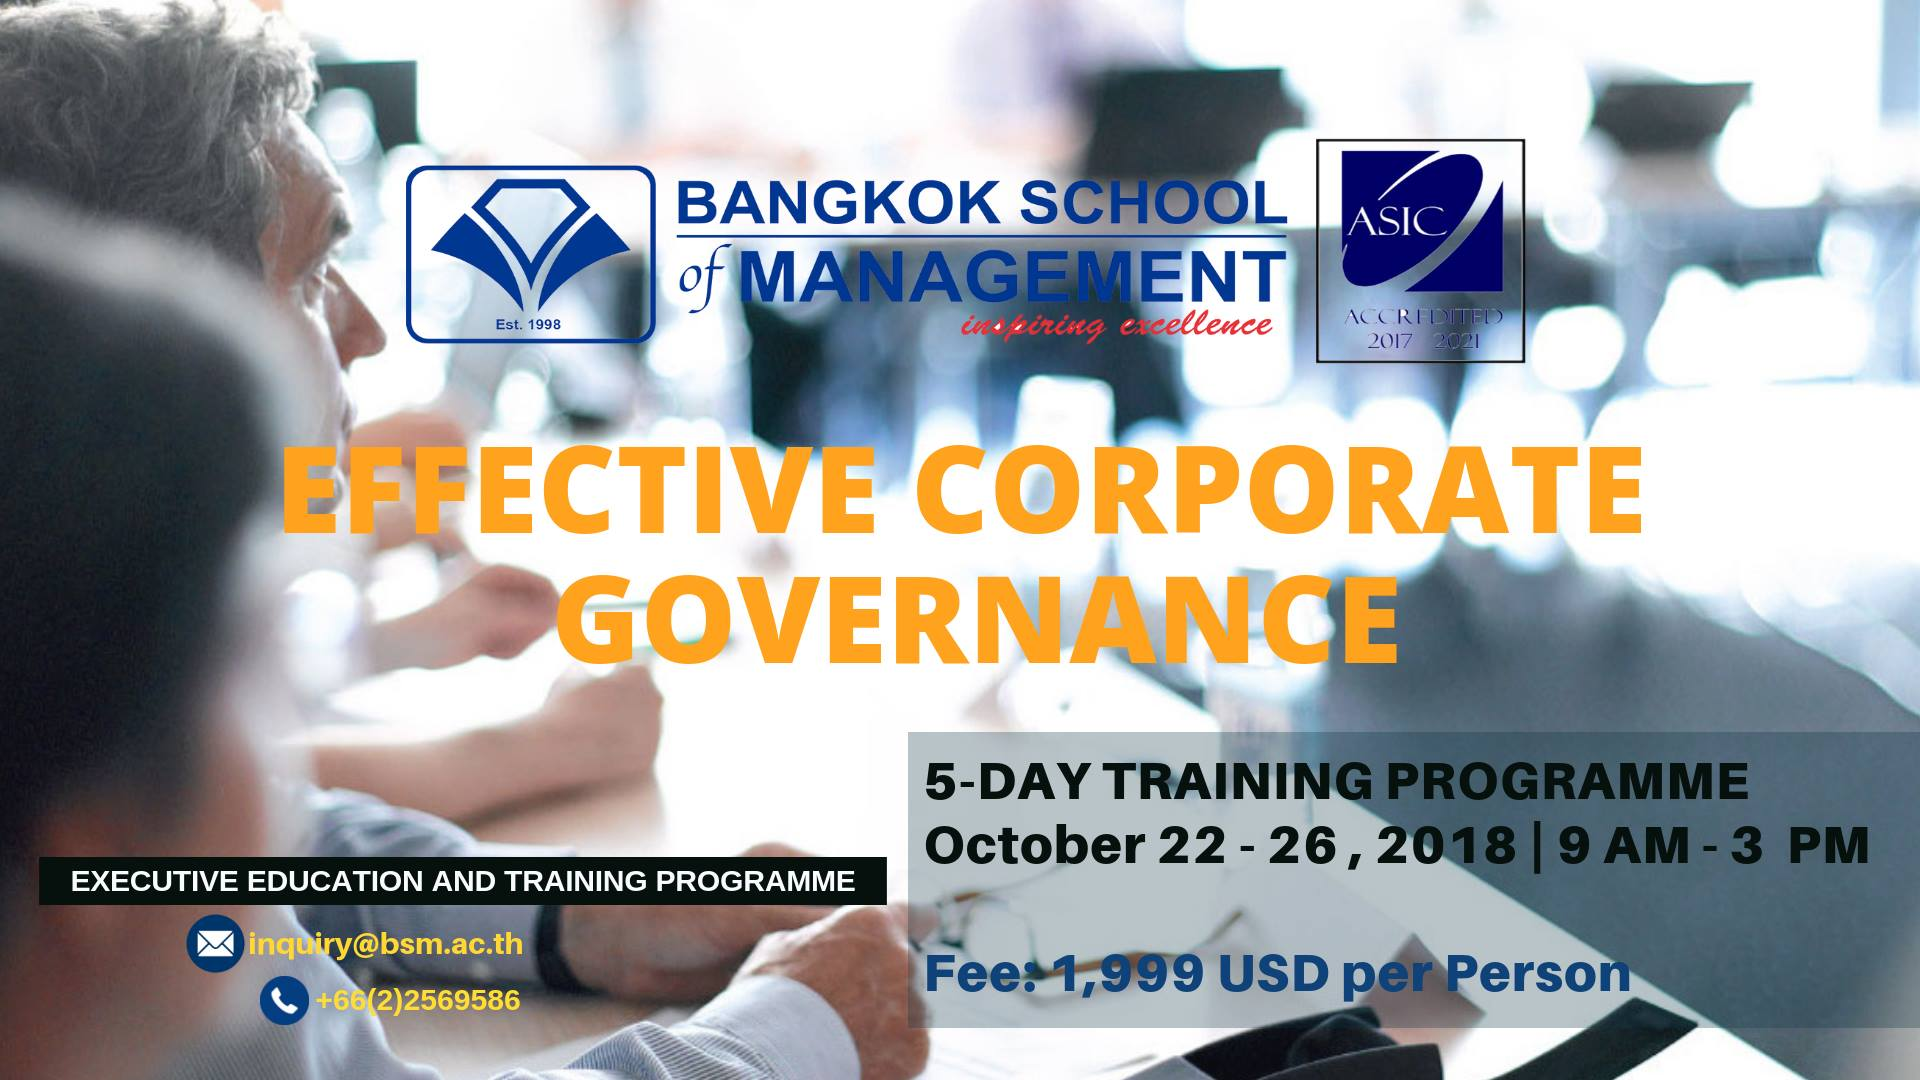 Date: October 22 &#8211; 26 <br></br>Effective Corporate Governance